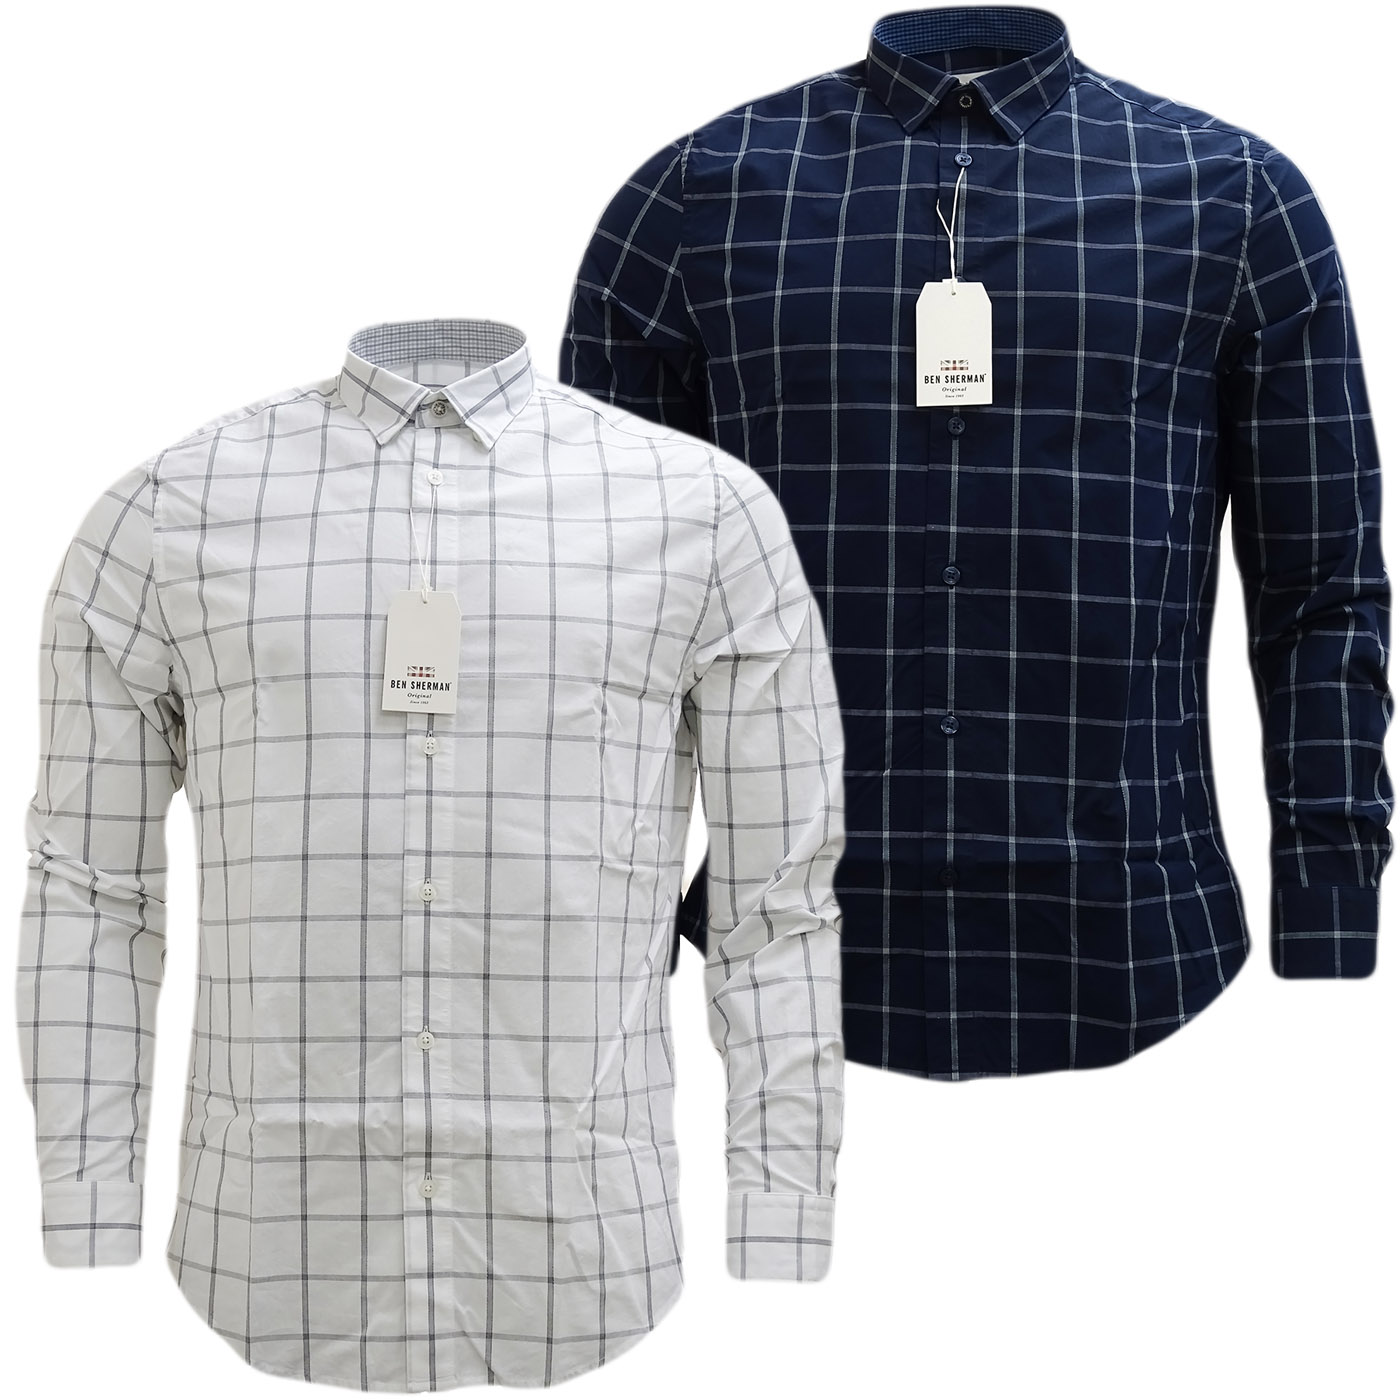 Ben Sherman Large Check (Concealed Button Down) Shirt - Ma13363